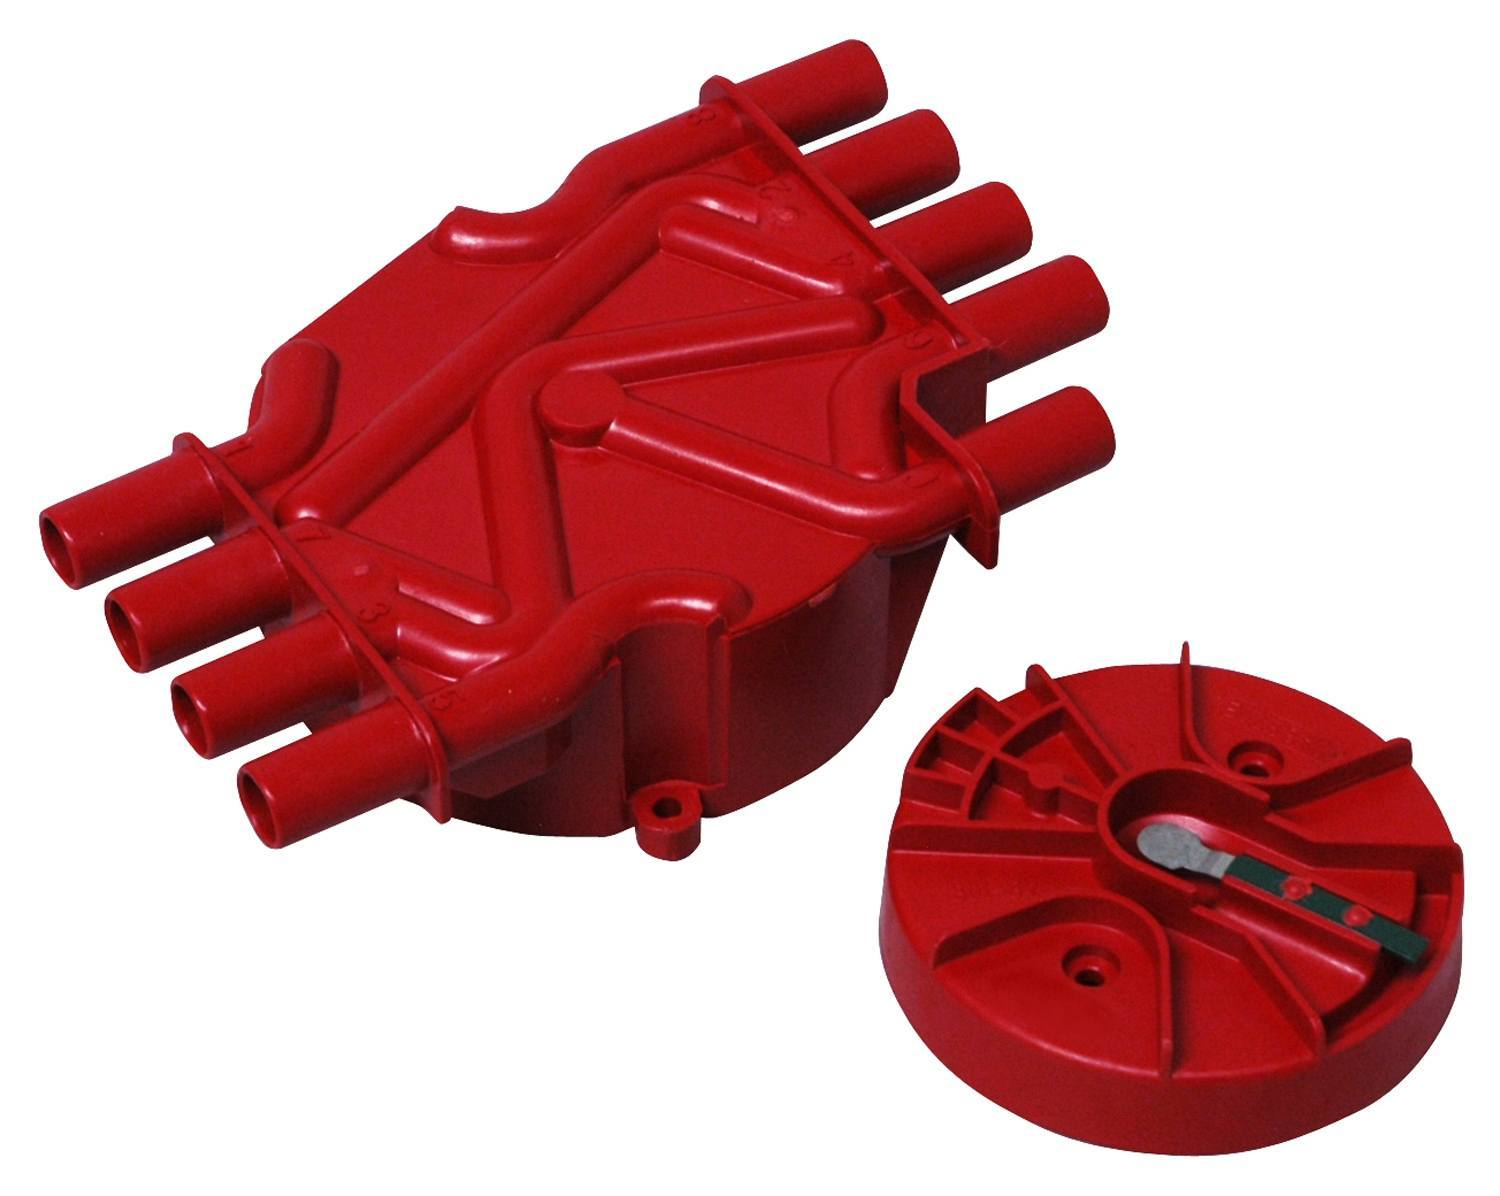 MSD Ignition 8017 Cap and Rotor Kit, Socket Style, Brass Terminals, Screw Down, Red, Non-Vented, Chevy V8, Kit